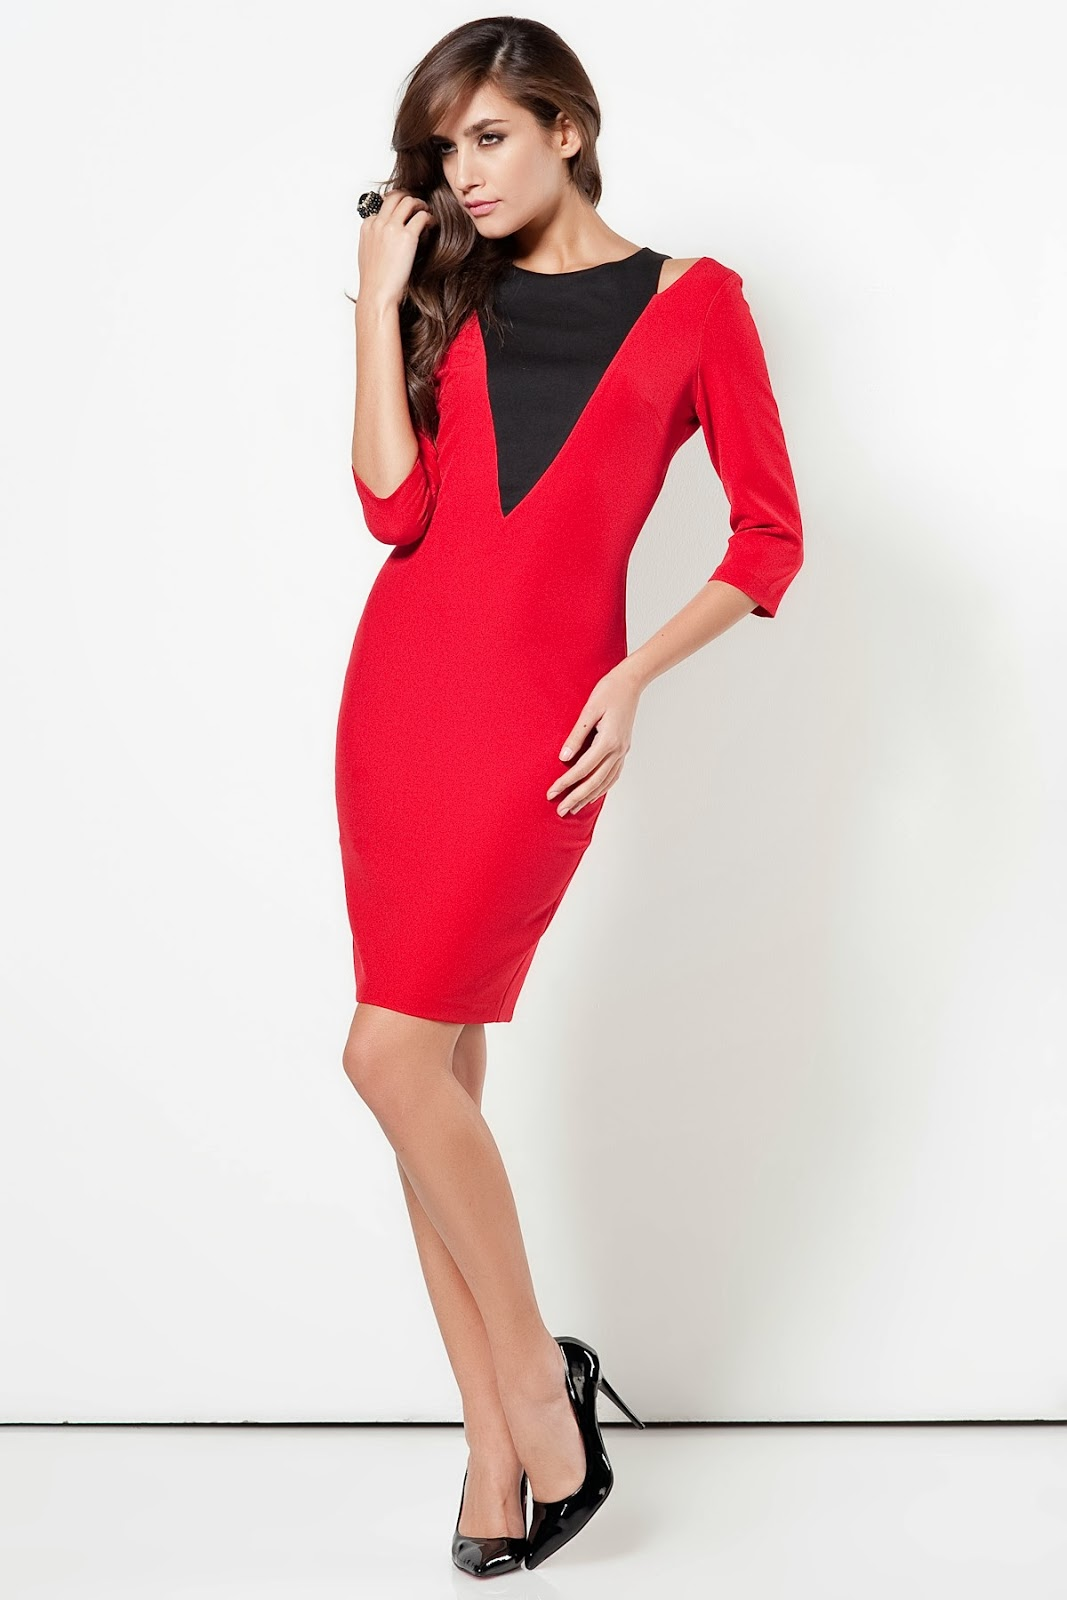 evening dresses 2014s clothing fashion all designs